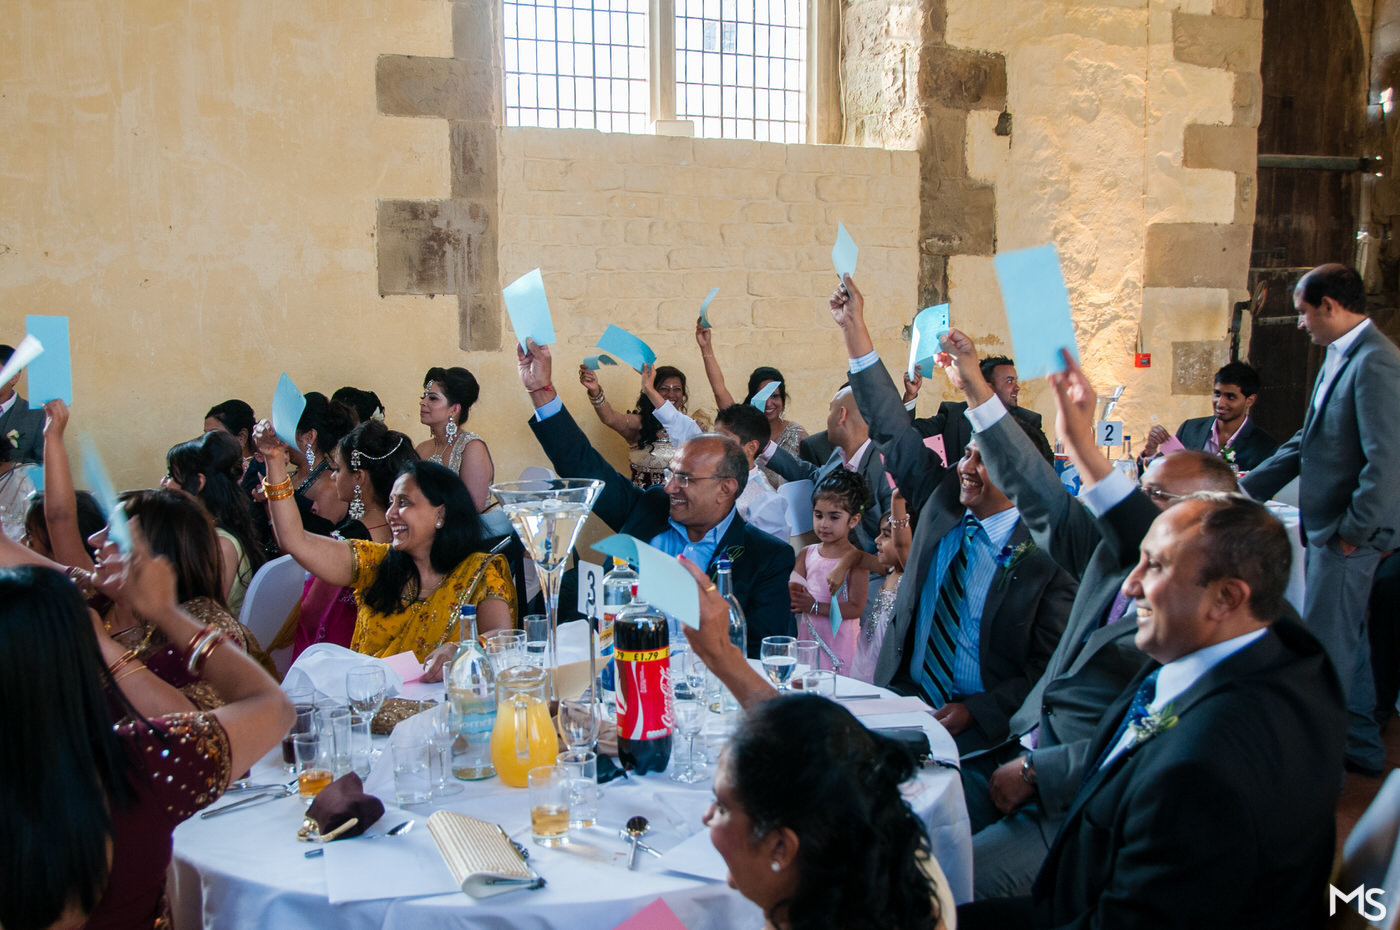 Bolsover-Castle-Indian-wedding - 28_DSC_5517.jpg